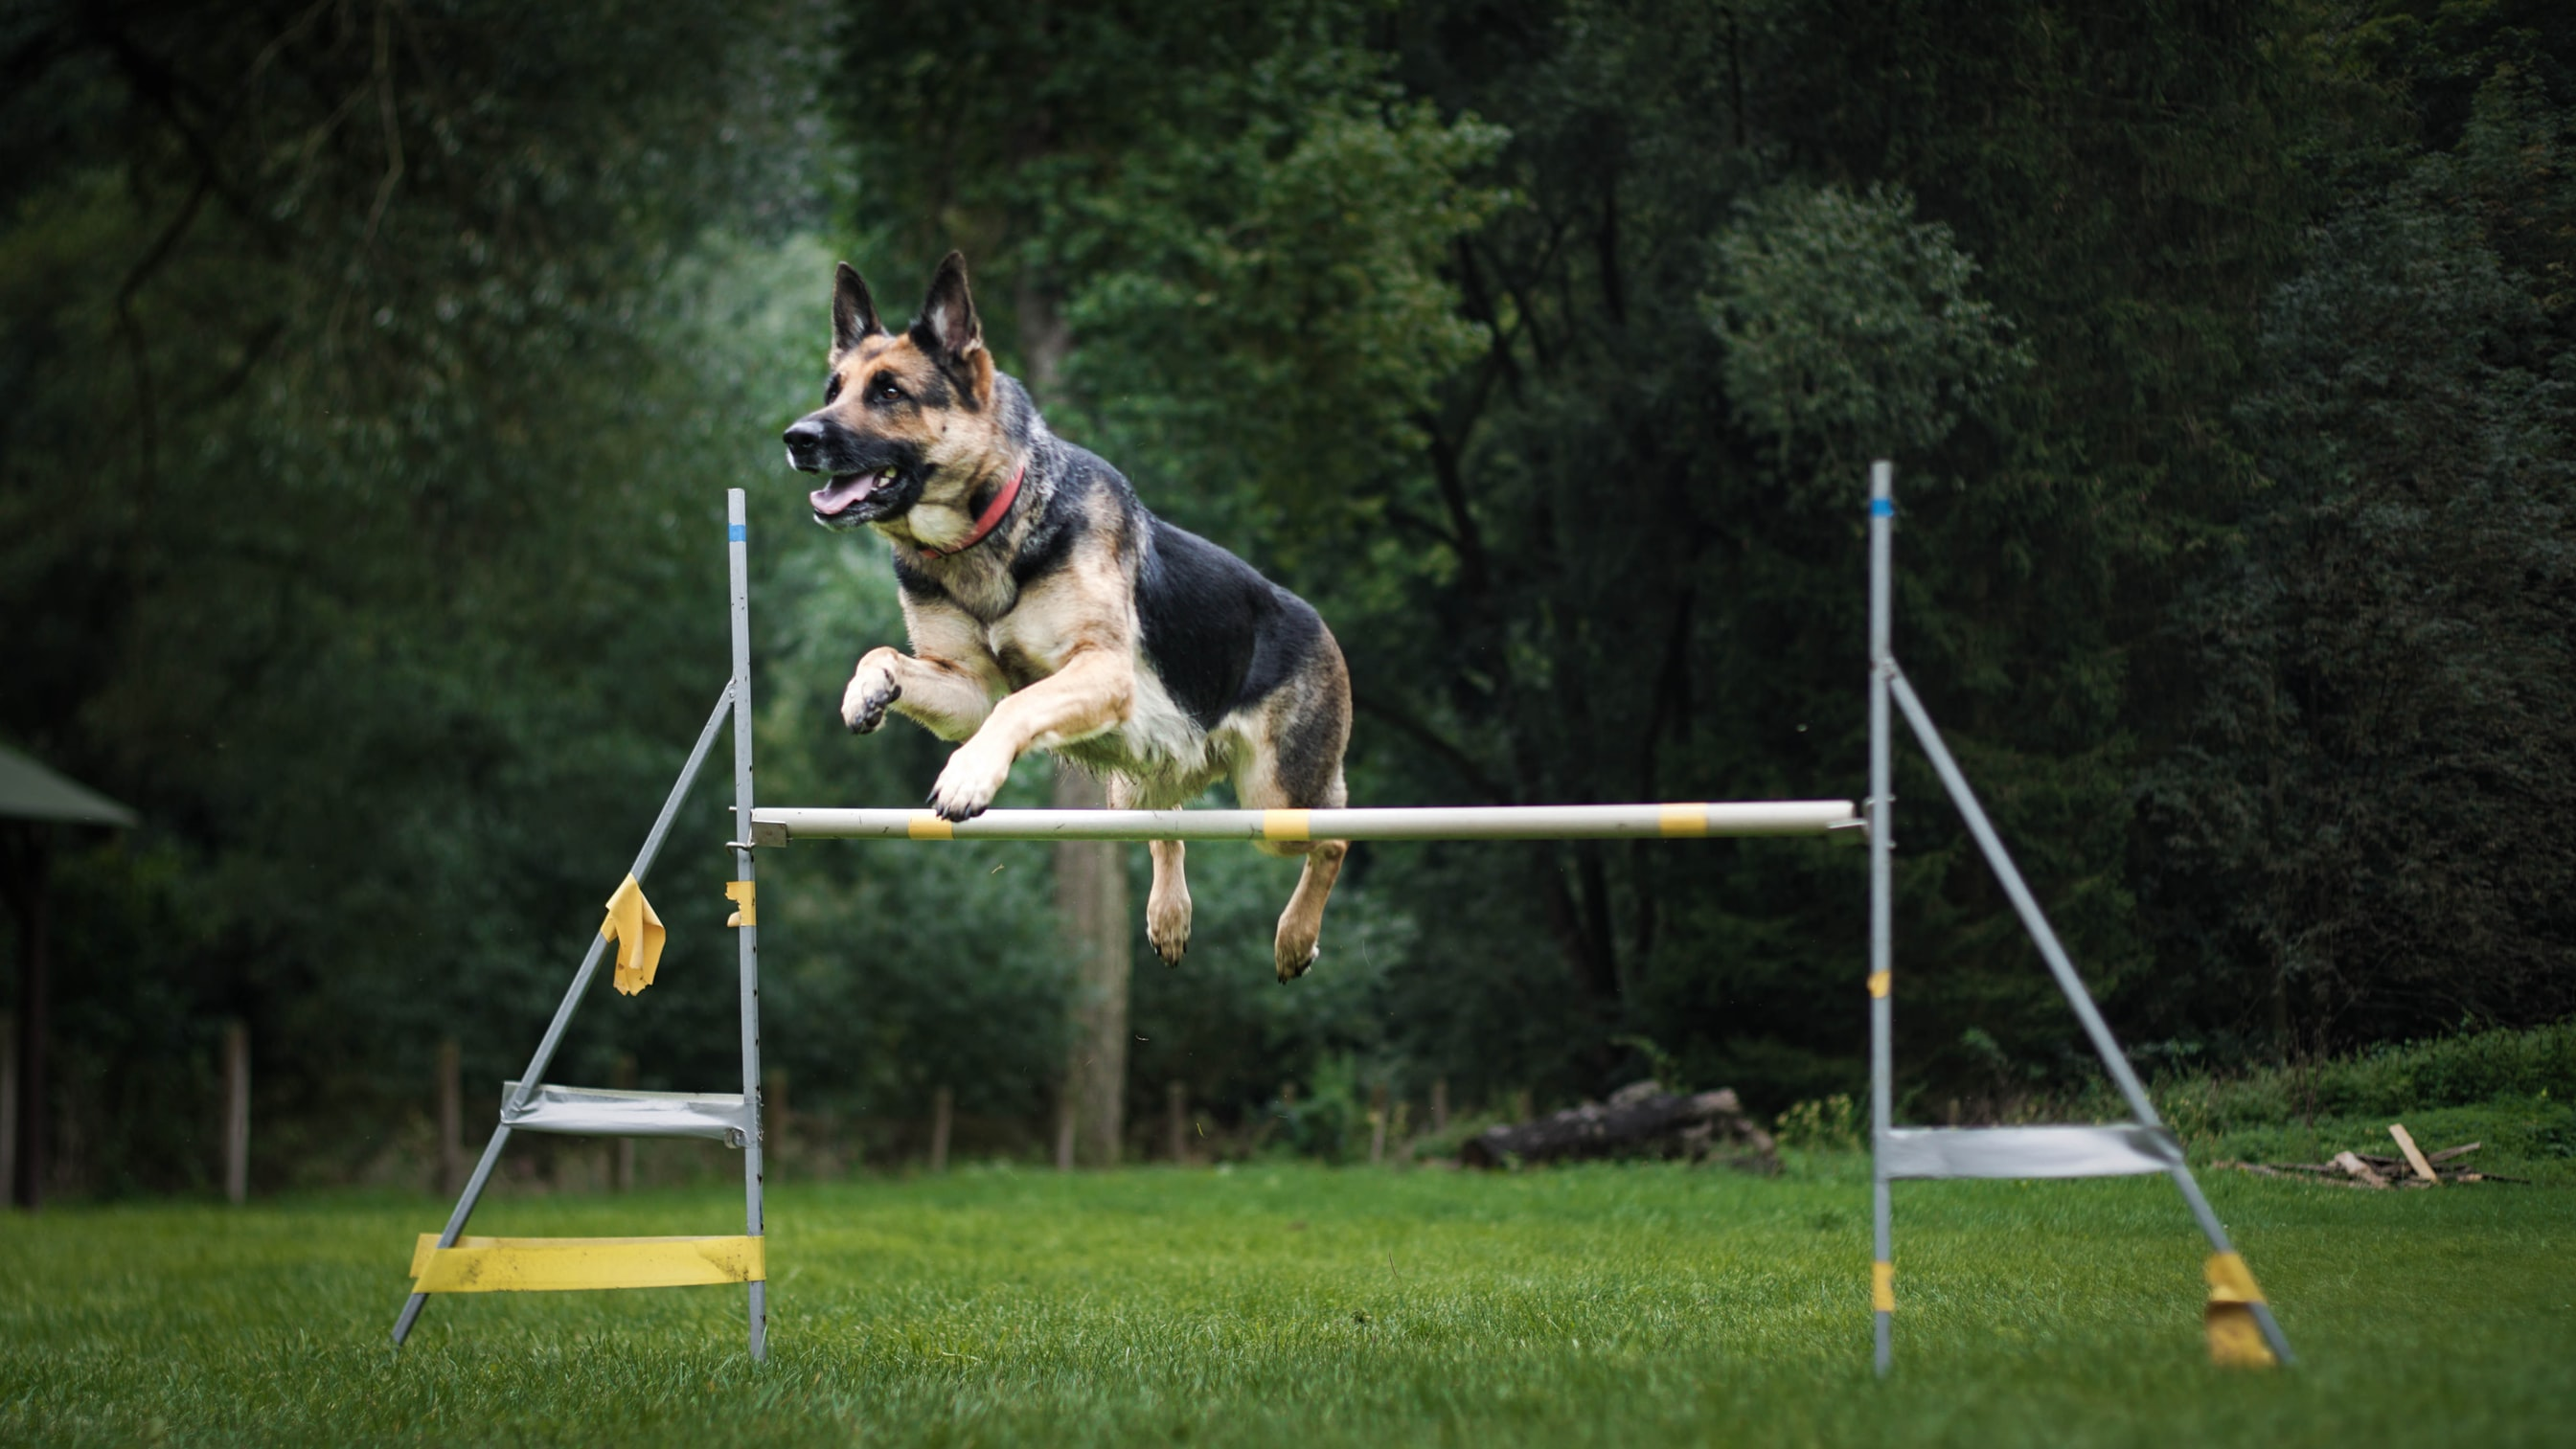 Dog Jumping Healthy Joints